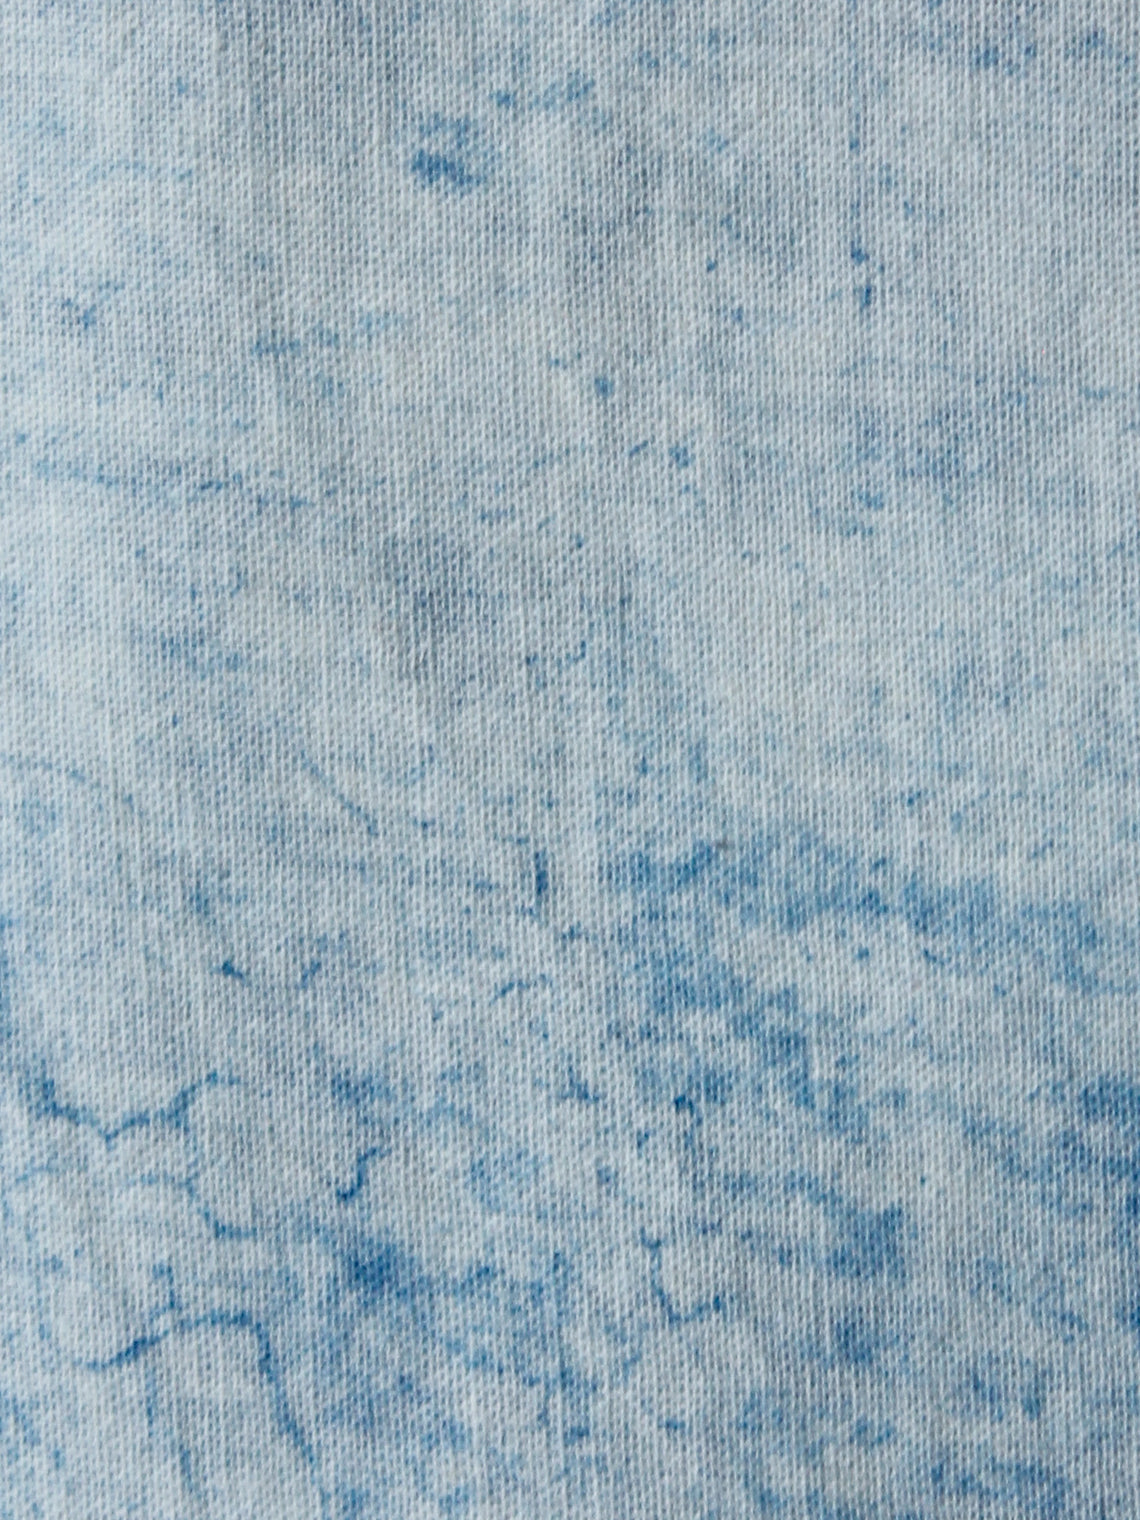 Indigo Ivory Hand Brush Painted Cotton Fabric Per Meter - F001F1339